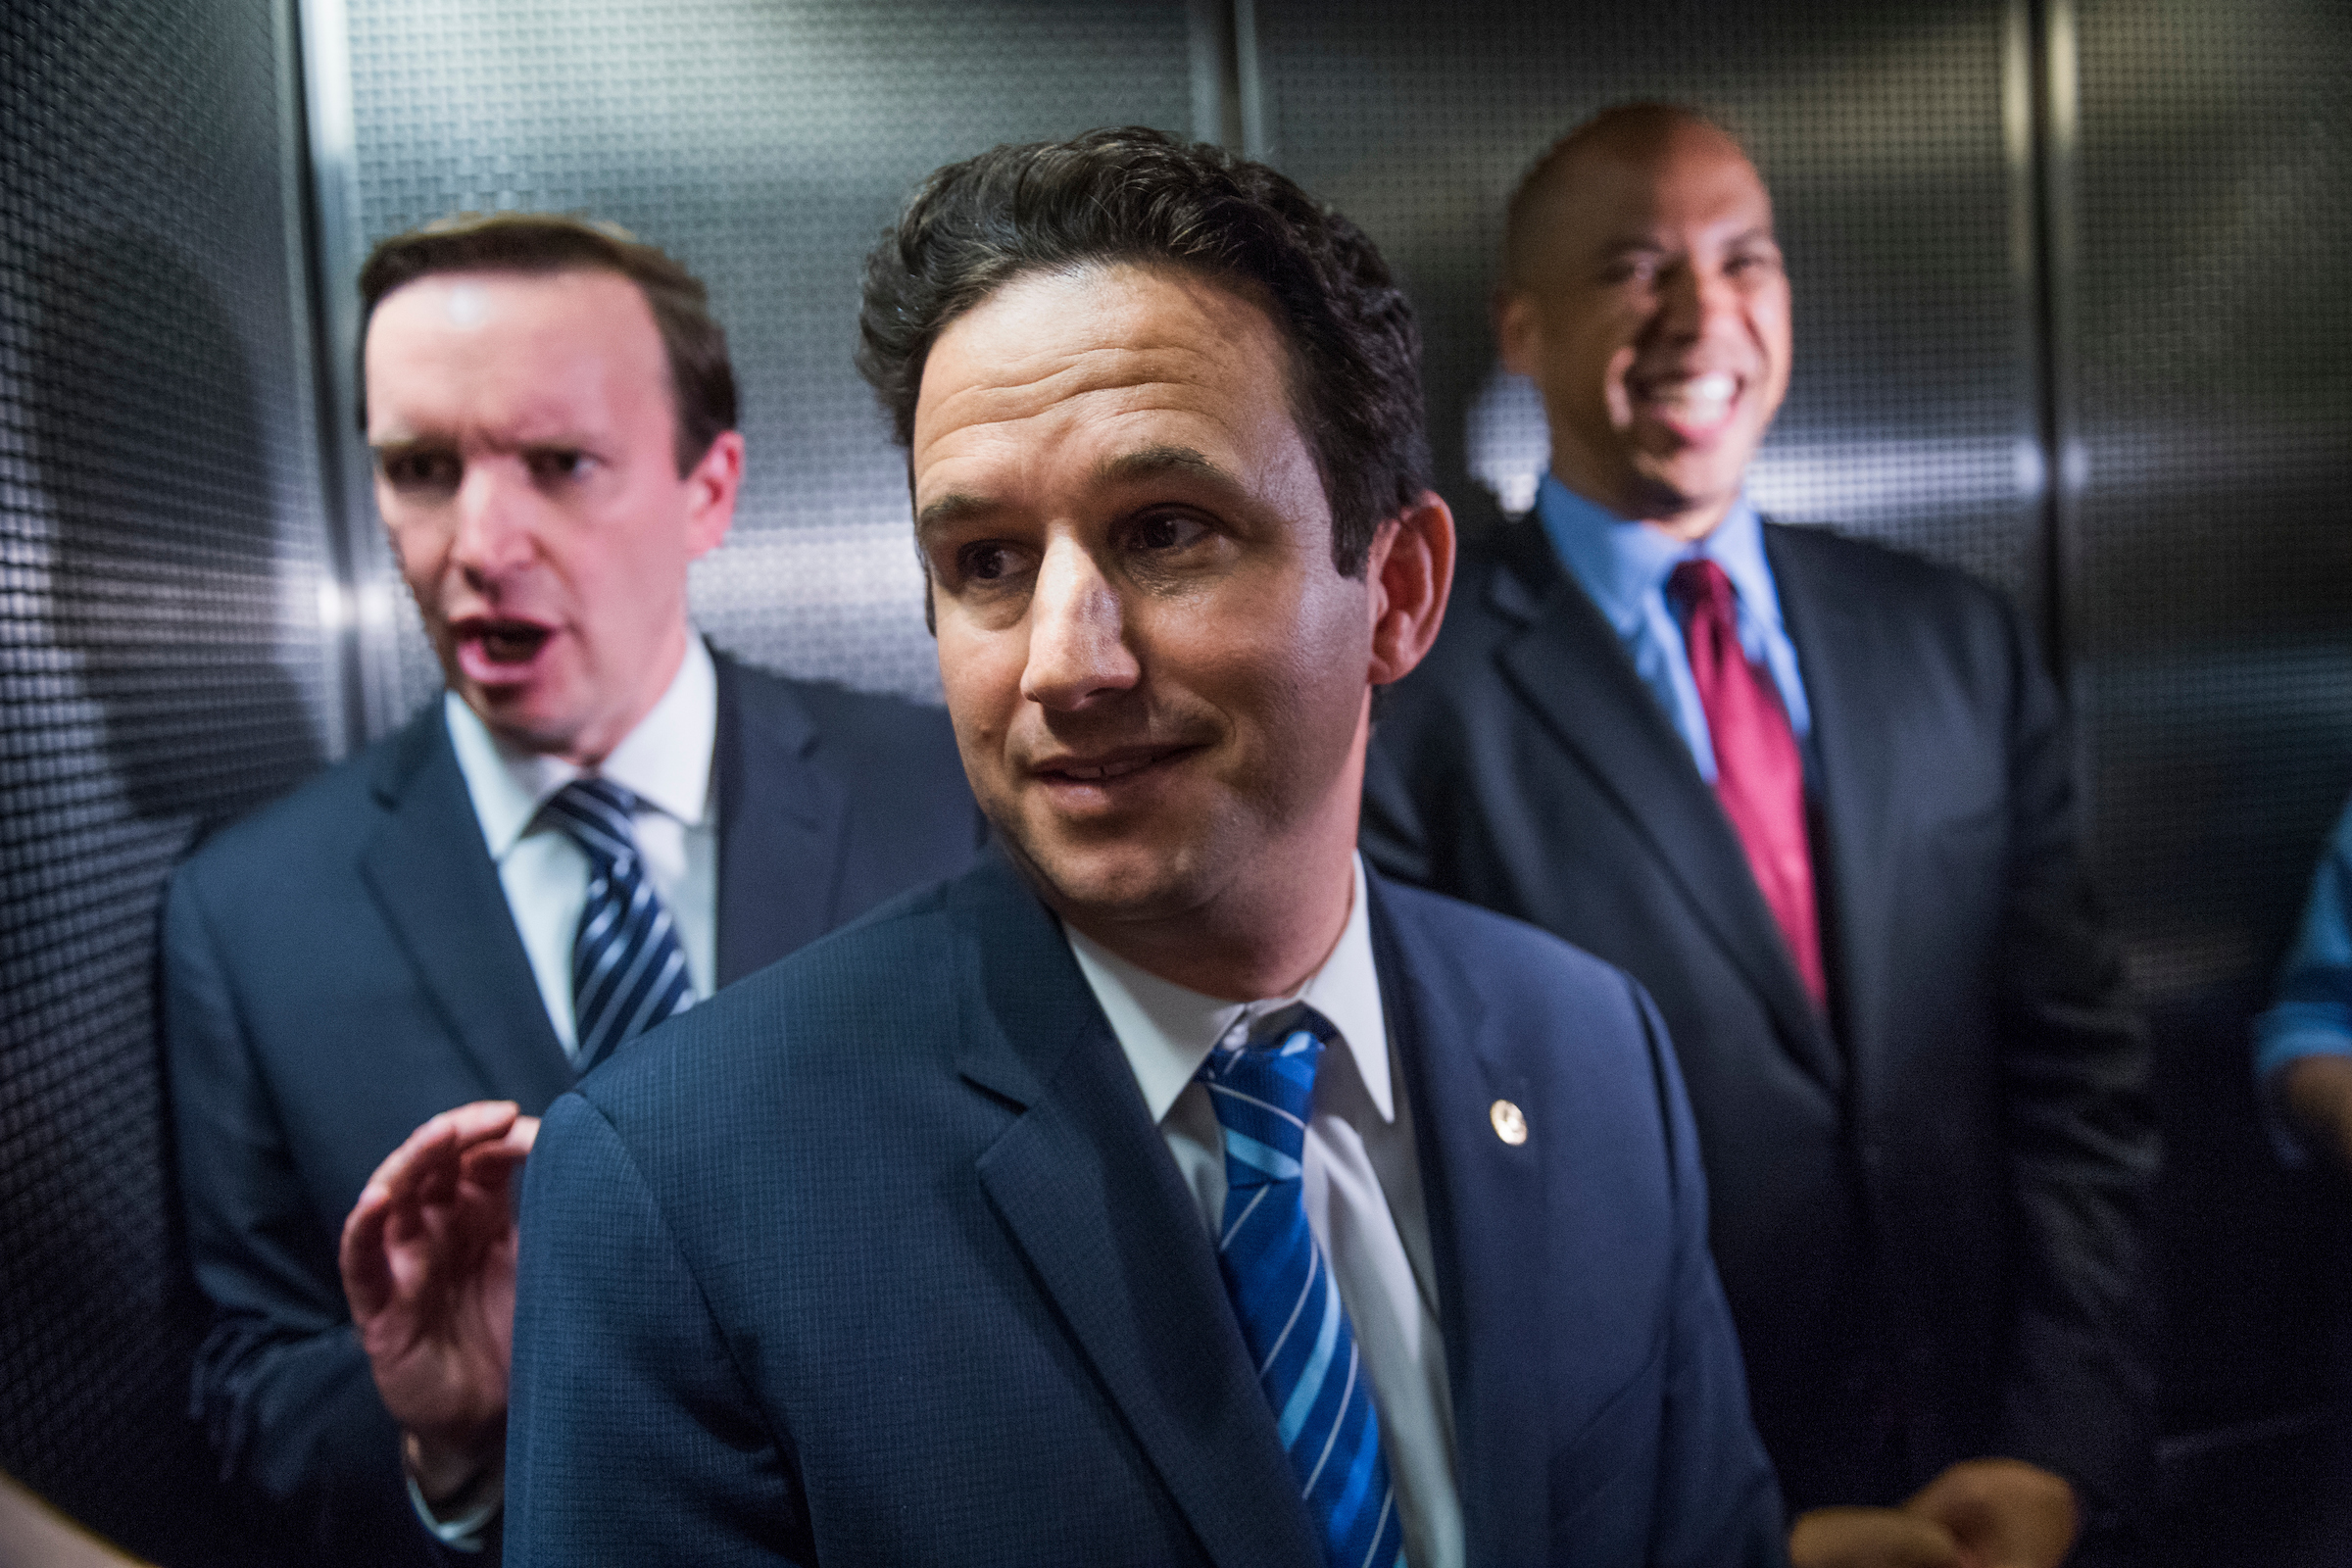 UNITED STATES - JUNE 20: From left, Sens. Chris Murphy, D-Conn., Brian Schatz, D-Hawaii, and Cory Booker, D-N.J., ride an elevator in Ford Building before a meeting with Congressional Budget Office Director Keith Hall where they asked for a copy of the Republicans' health care bill on June 20, 2017. (Photo By Tom Williams/CQ Roll Call)